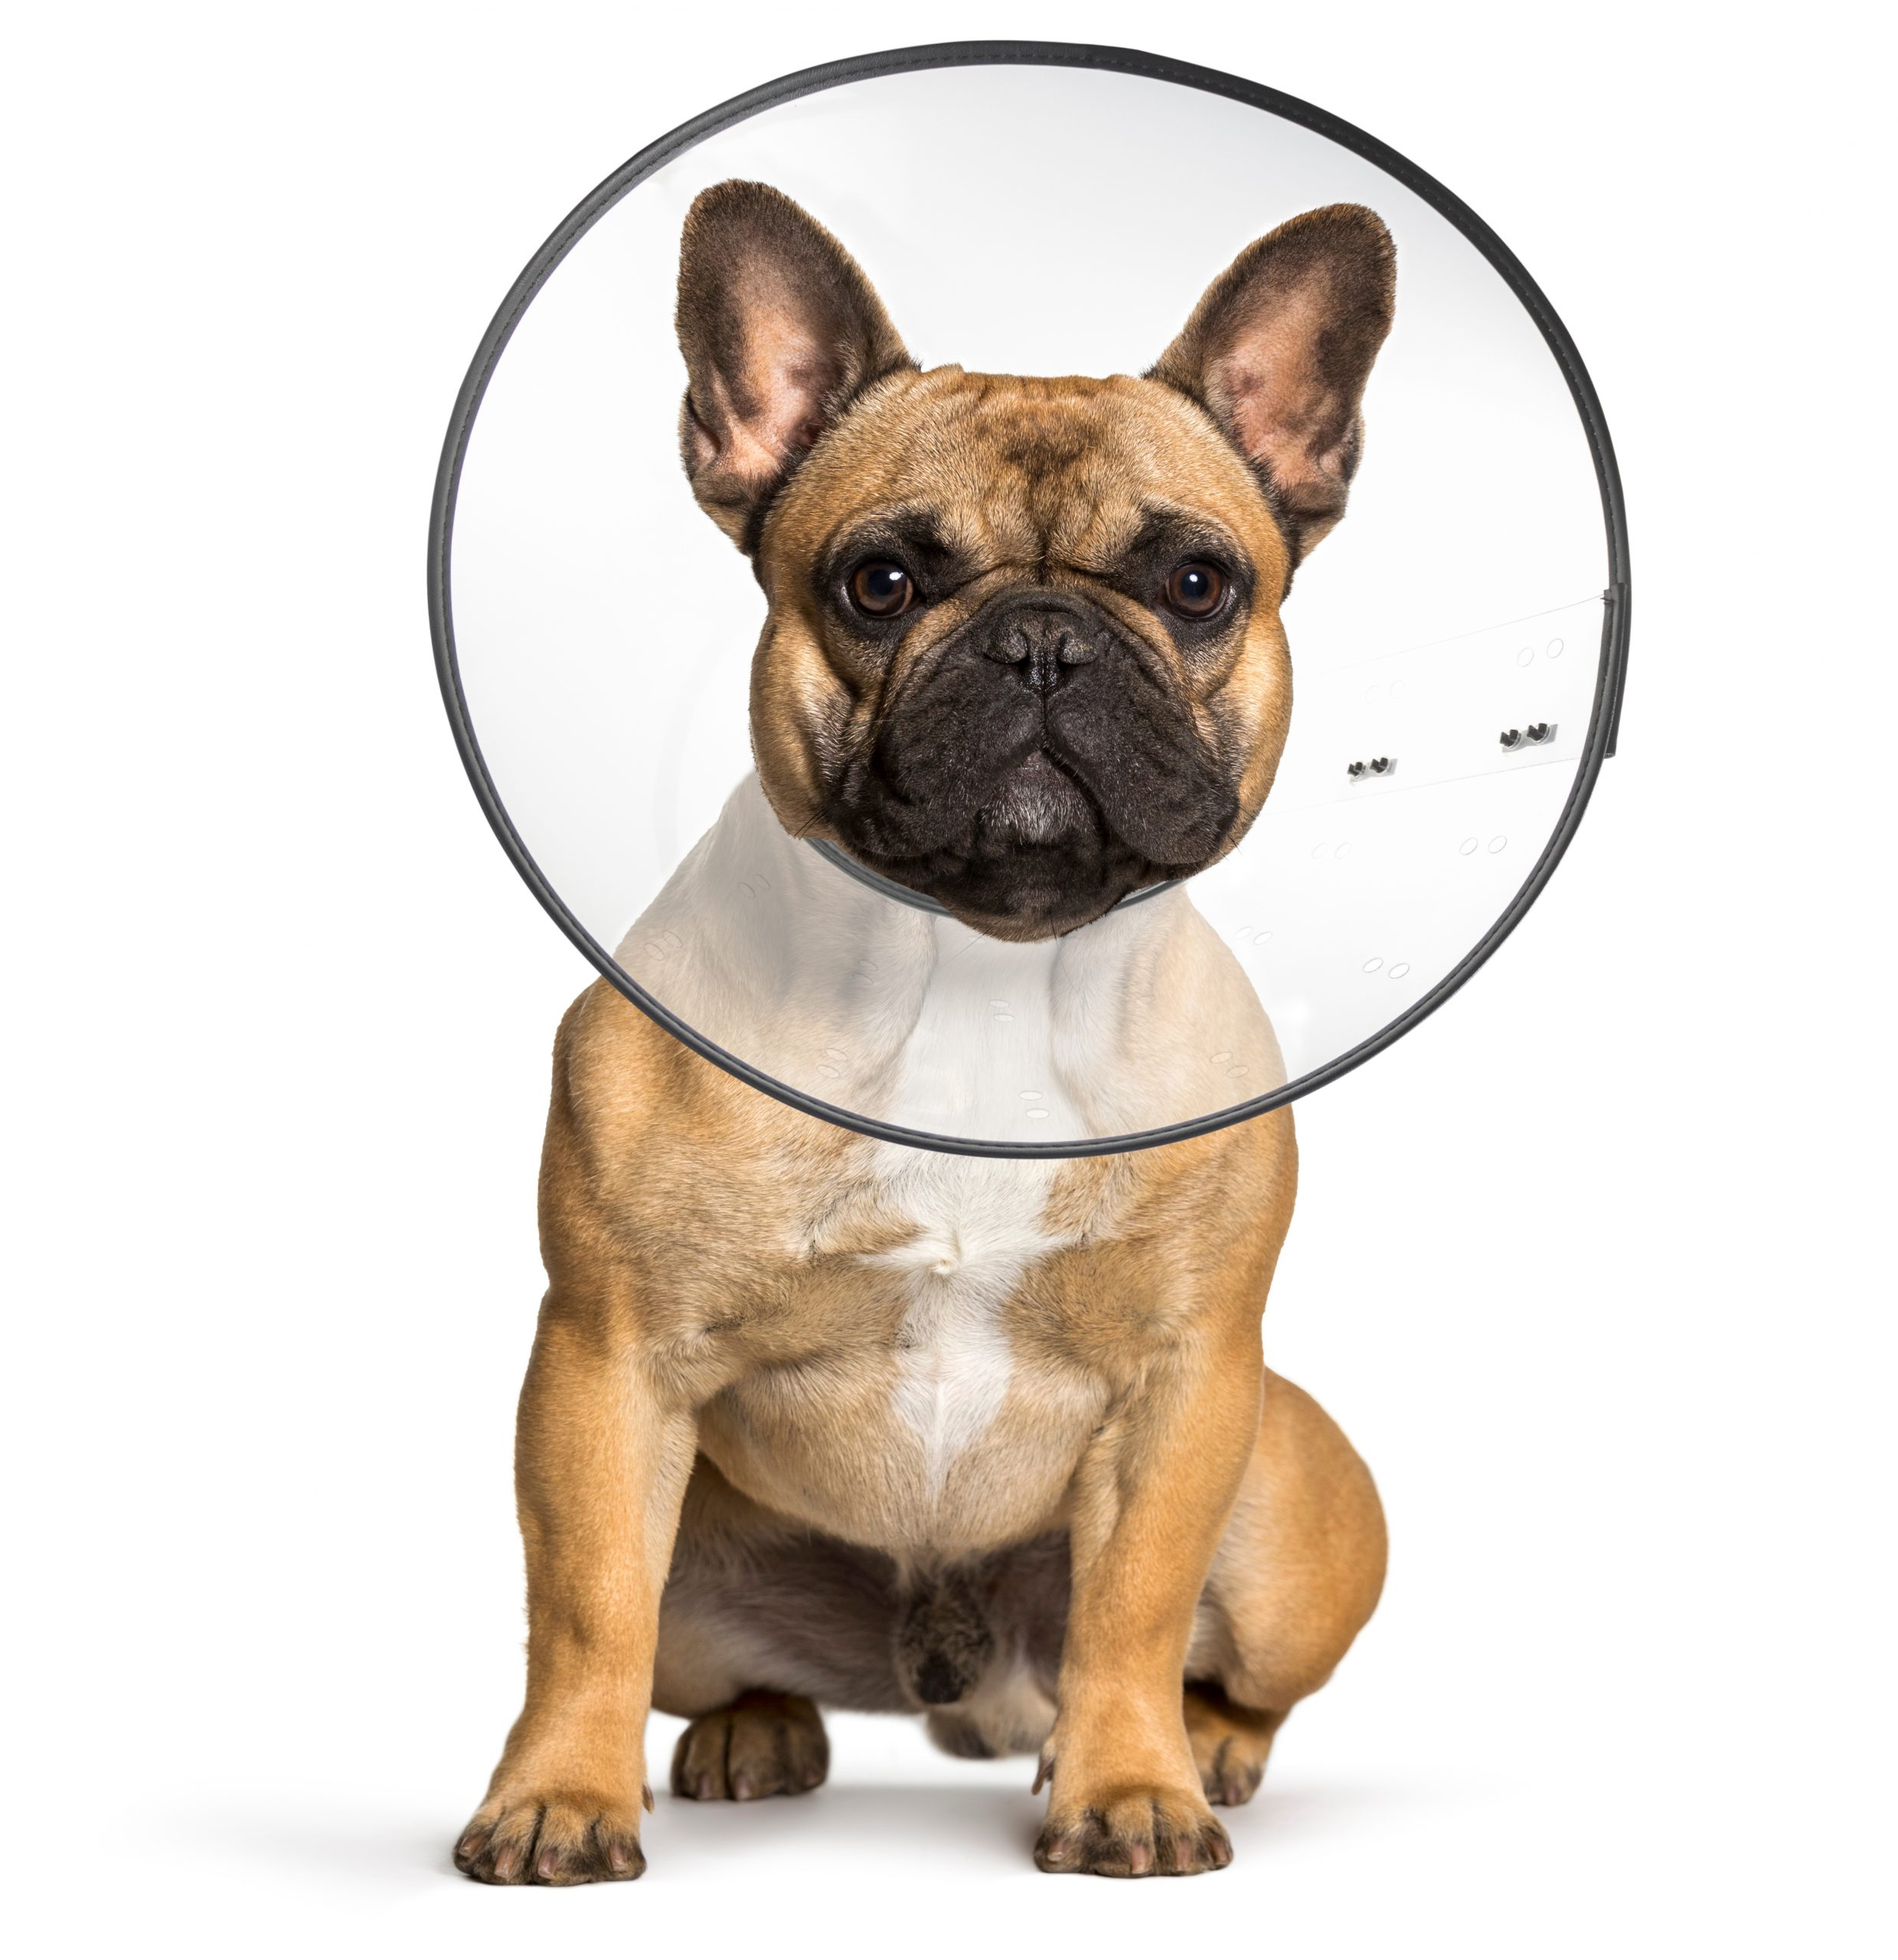 French Bulldog wearing plastic recovery cone